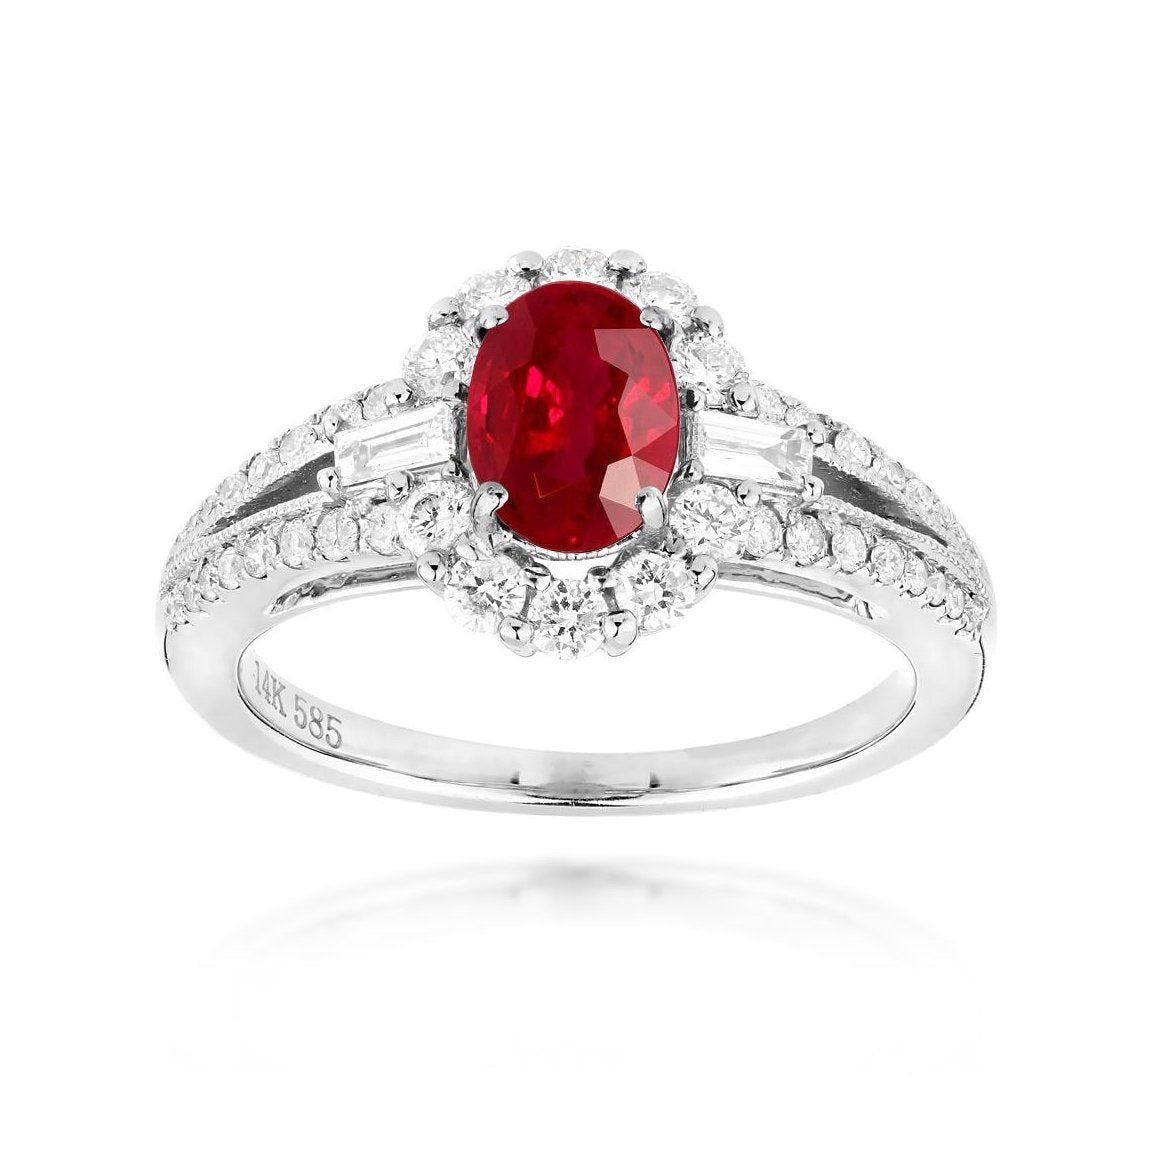 Sabel Collection 14K White Gold Oval Ruby and Diamond Halo Ring with Split Shank